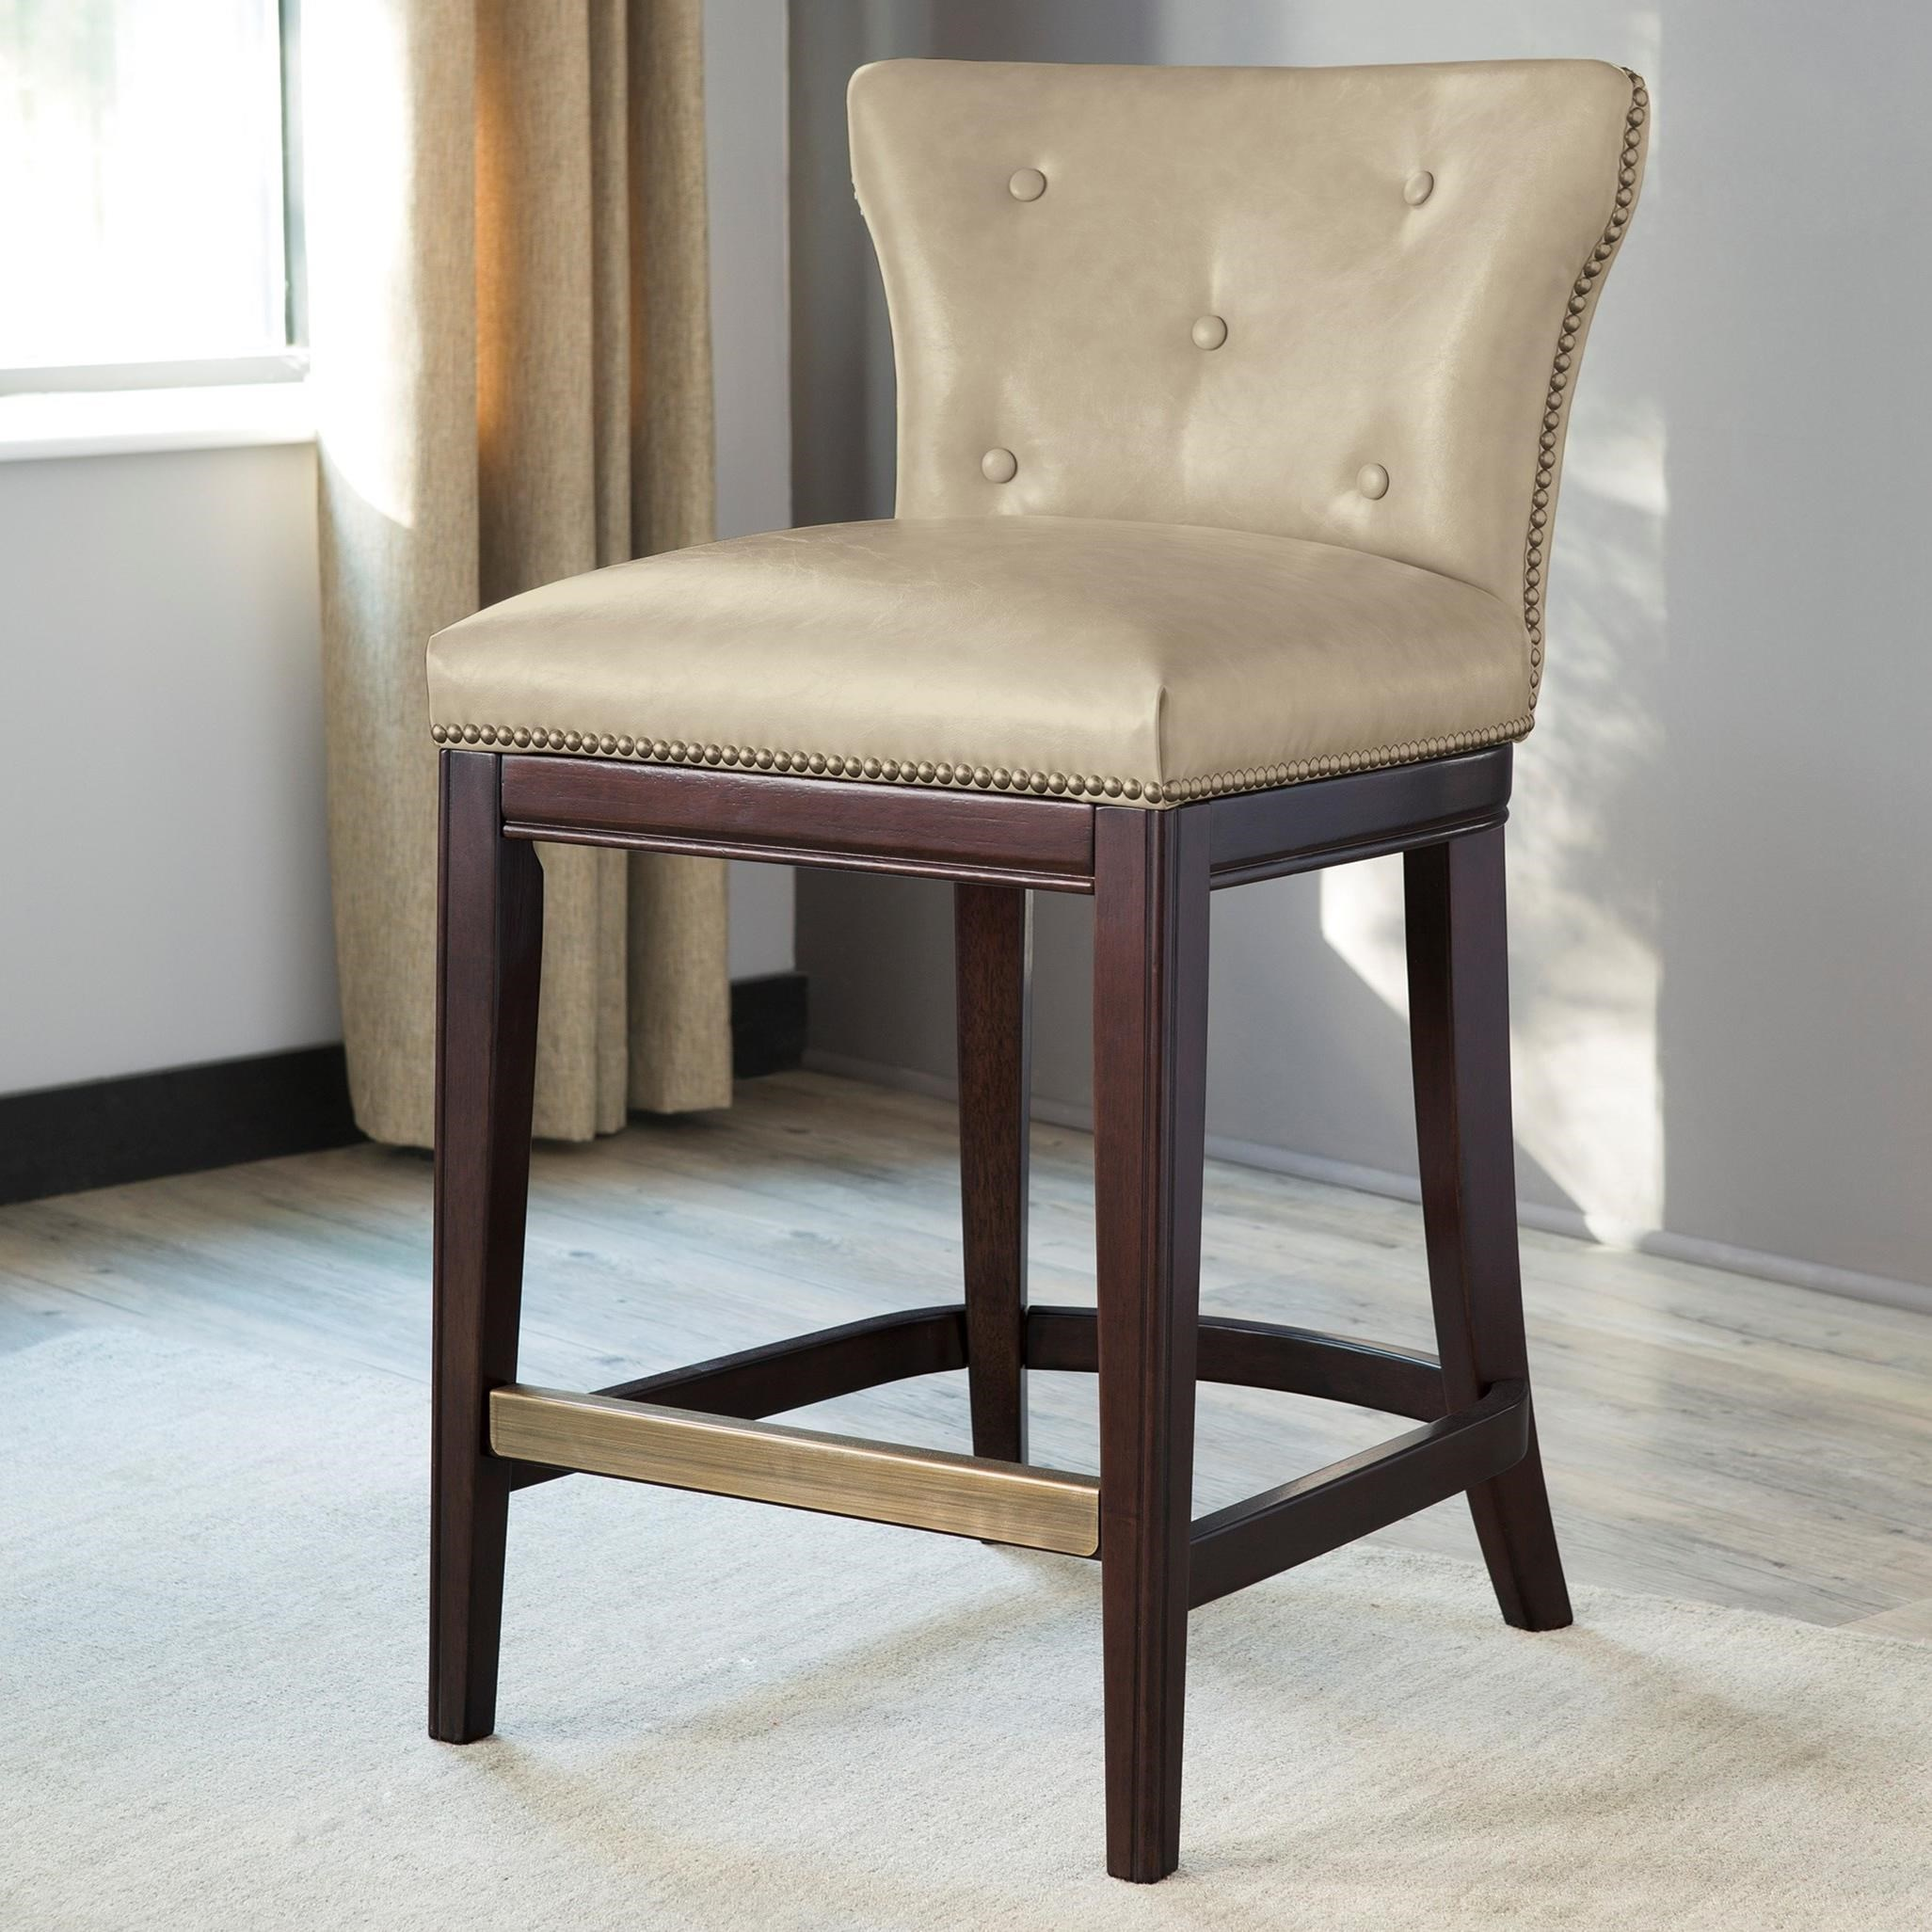 Furniture Stores In Bossier City La ... Counter Height Stool with Low Back - Ivan Smith Furniture - Bar Stools